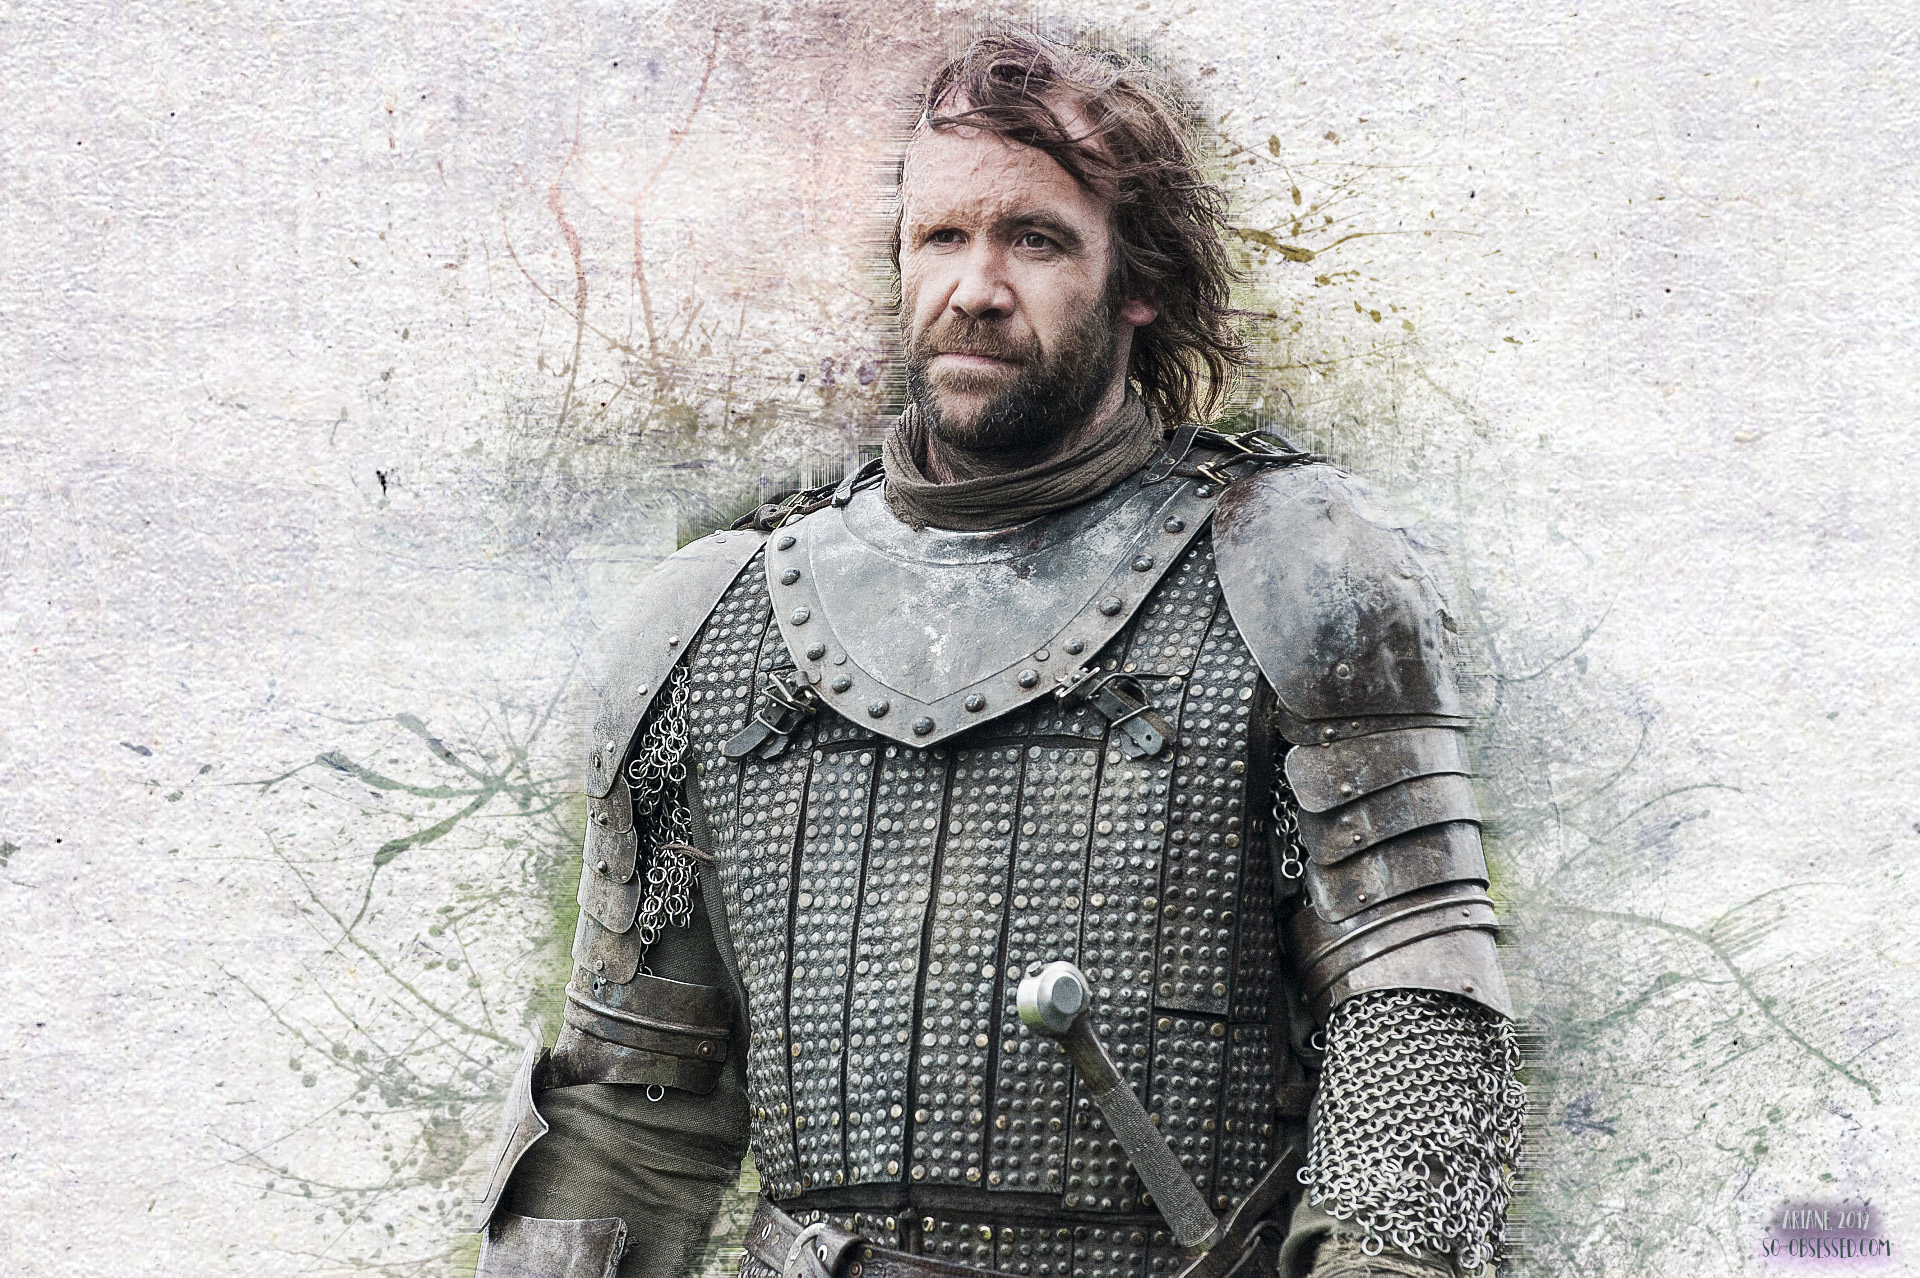 Game Of Thrones Sandor Clegane Wallpaper By Intothisshadow On